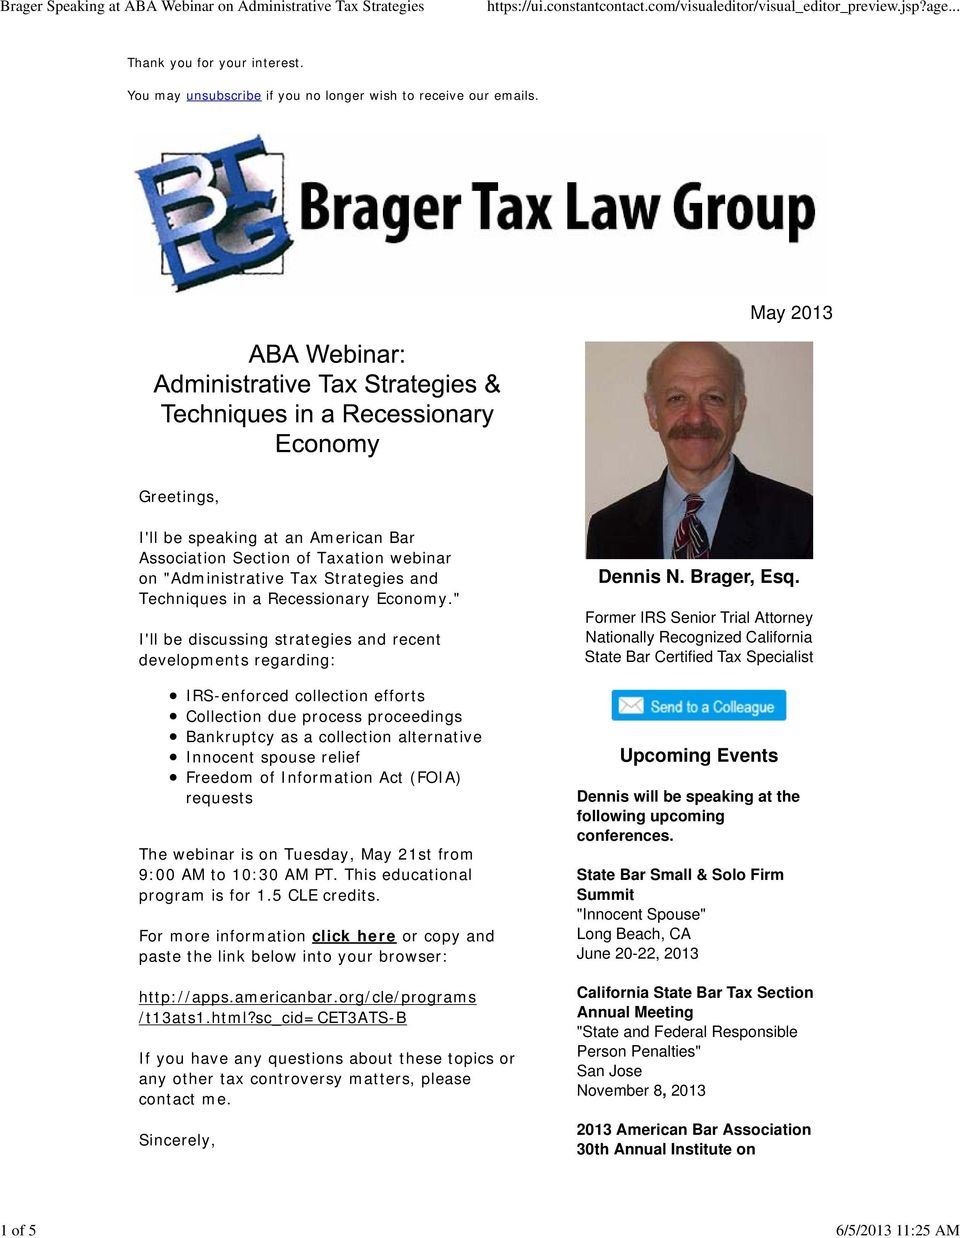 """ I'll be discussing strategies and recent developments regarding: IRS-enforced collection efforts Collection due process proceedings Bankruptcy as a collection alternative Innocent spouse relief"